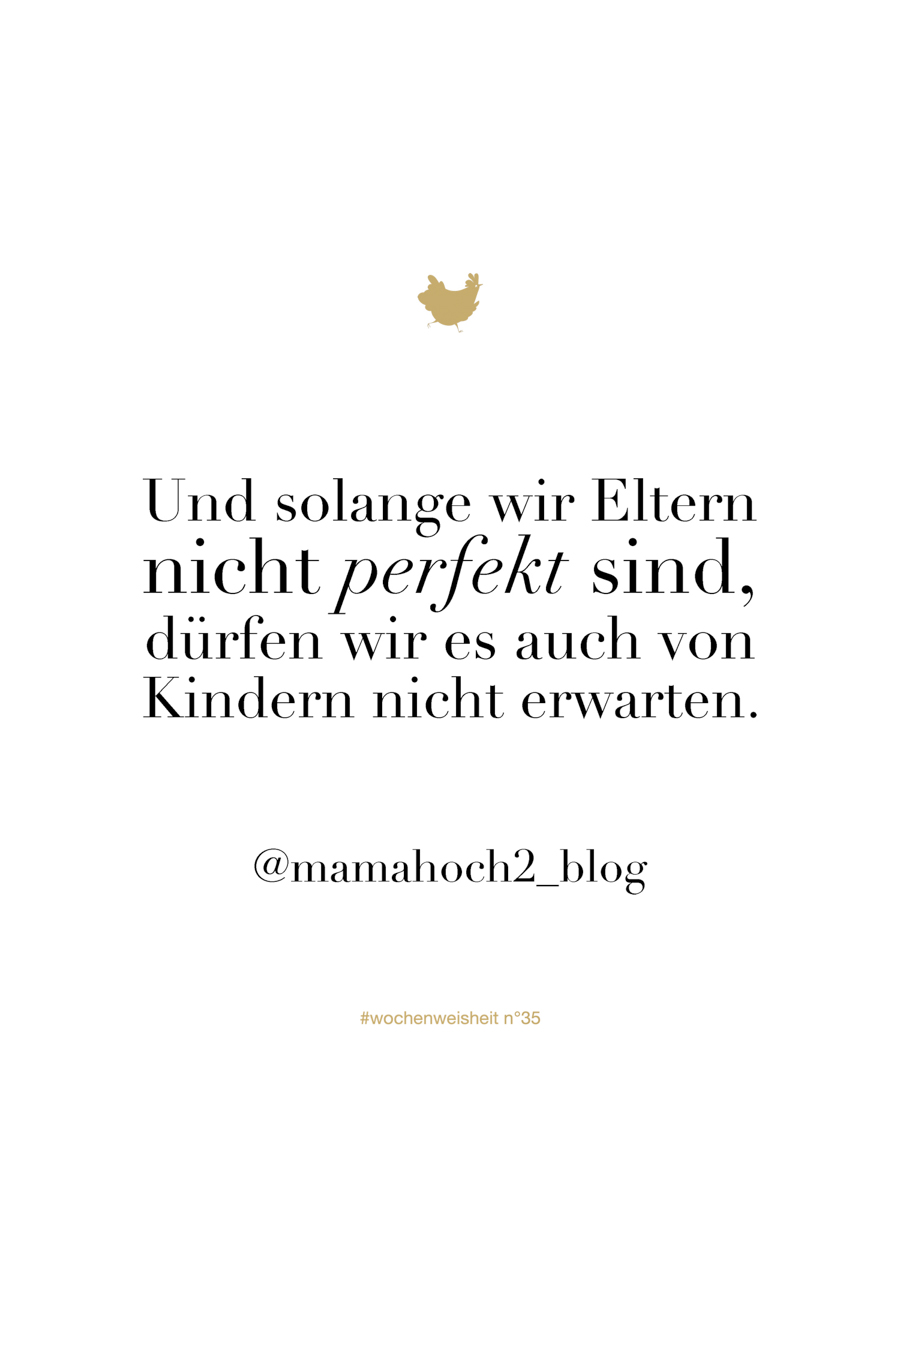 Wochenweisheit von Chez Mama Poule #parenting #quote #wisdom #zitate #elternsein #elternschule #herzensschule #attachmentparenting #unerzogen #montessori #mamaweisheit #familie #kinder #lebenmitkind #kleinkind #motivation #elternmotivation #inspiration #quote #wochenweisheit